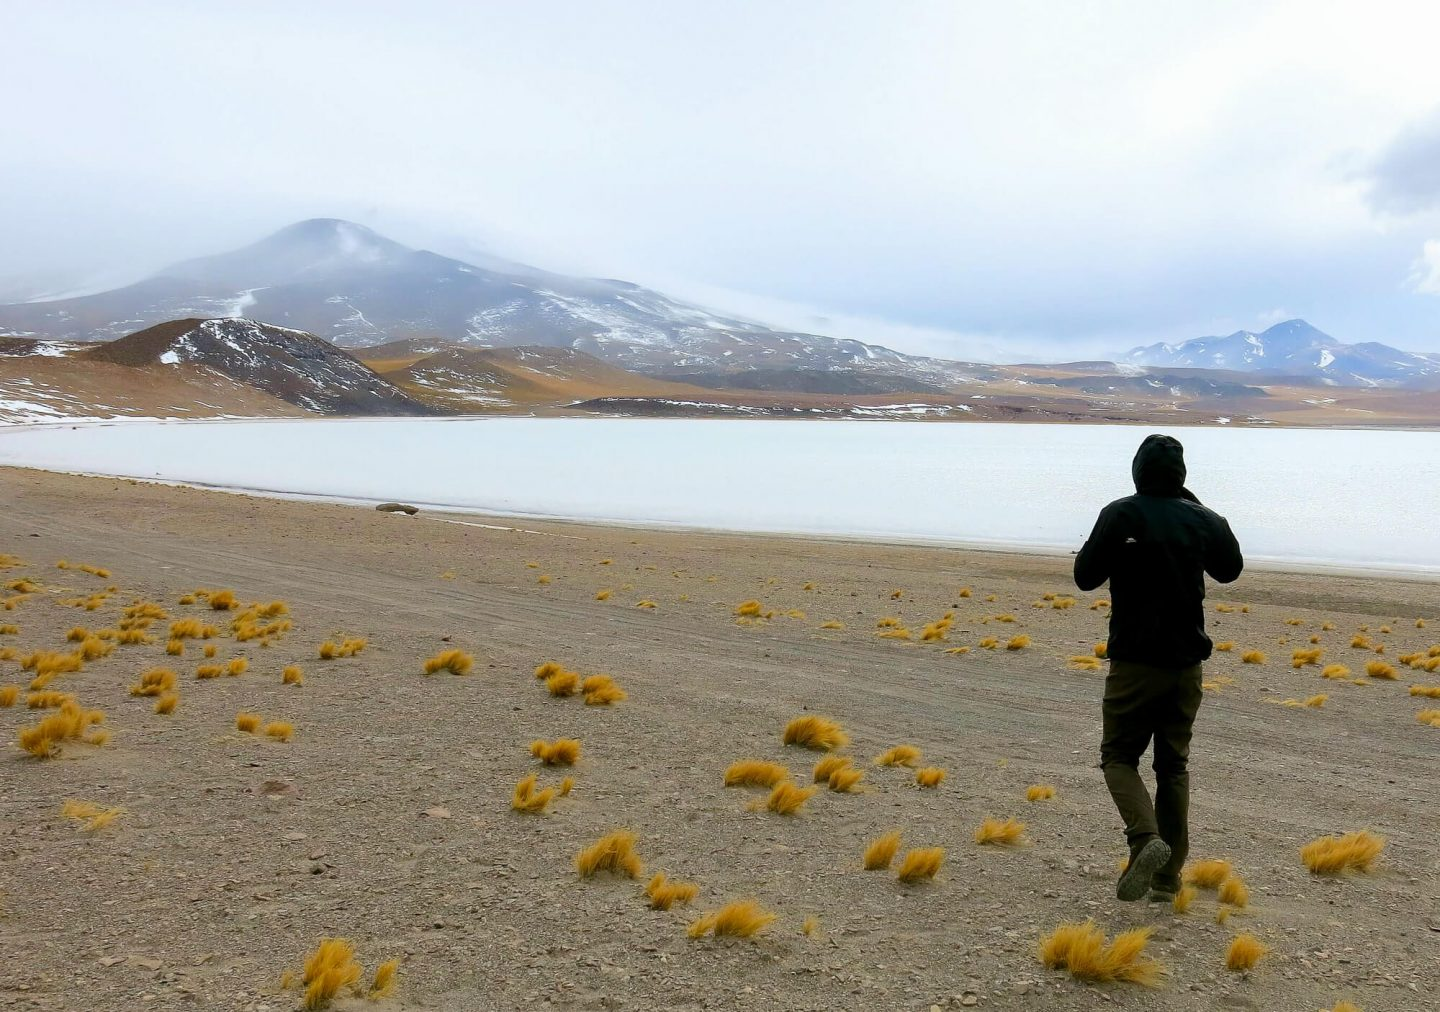 Find out which tours are the best to book in the Atacama Desert. Top tours in Atacama Desert.